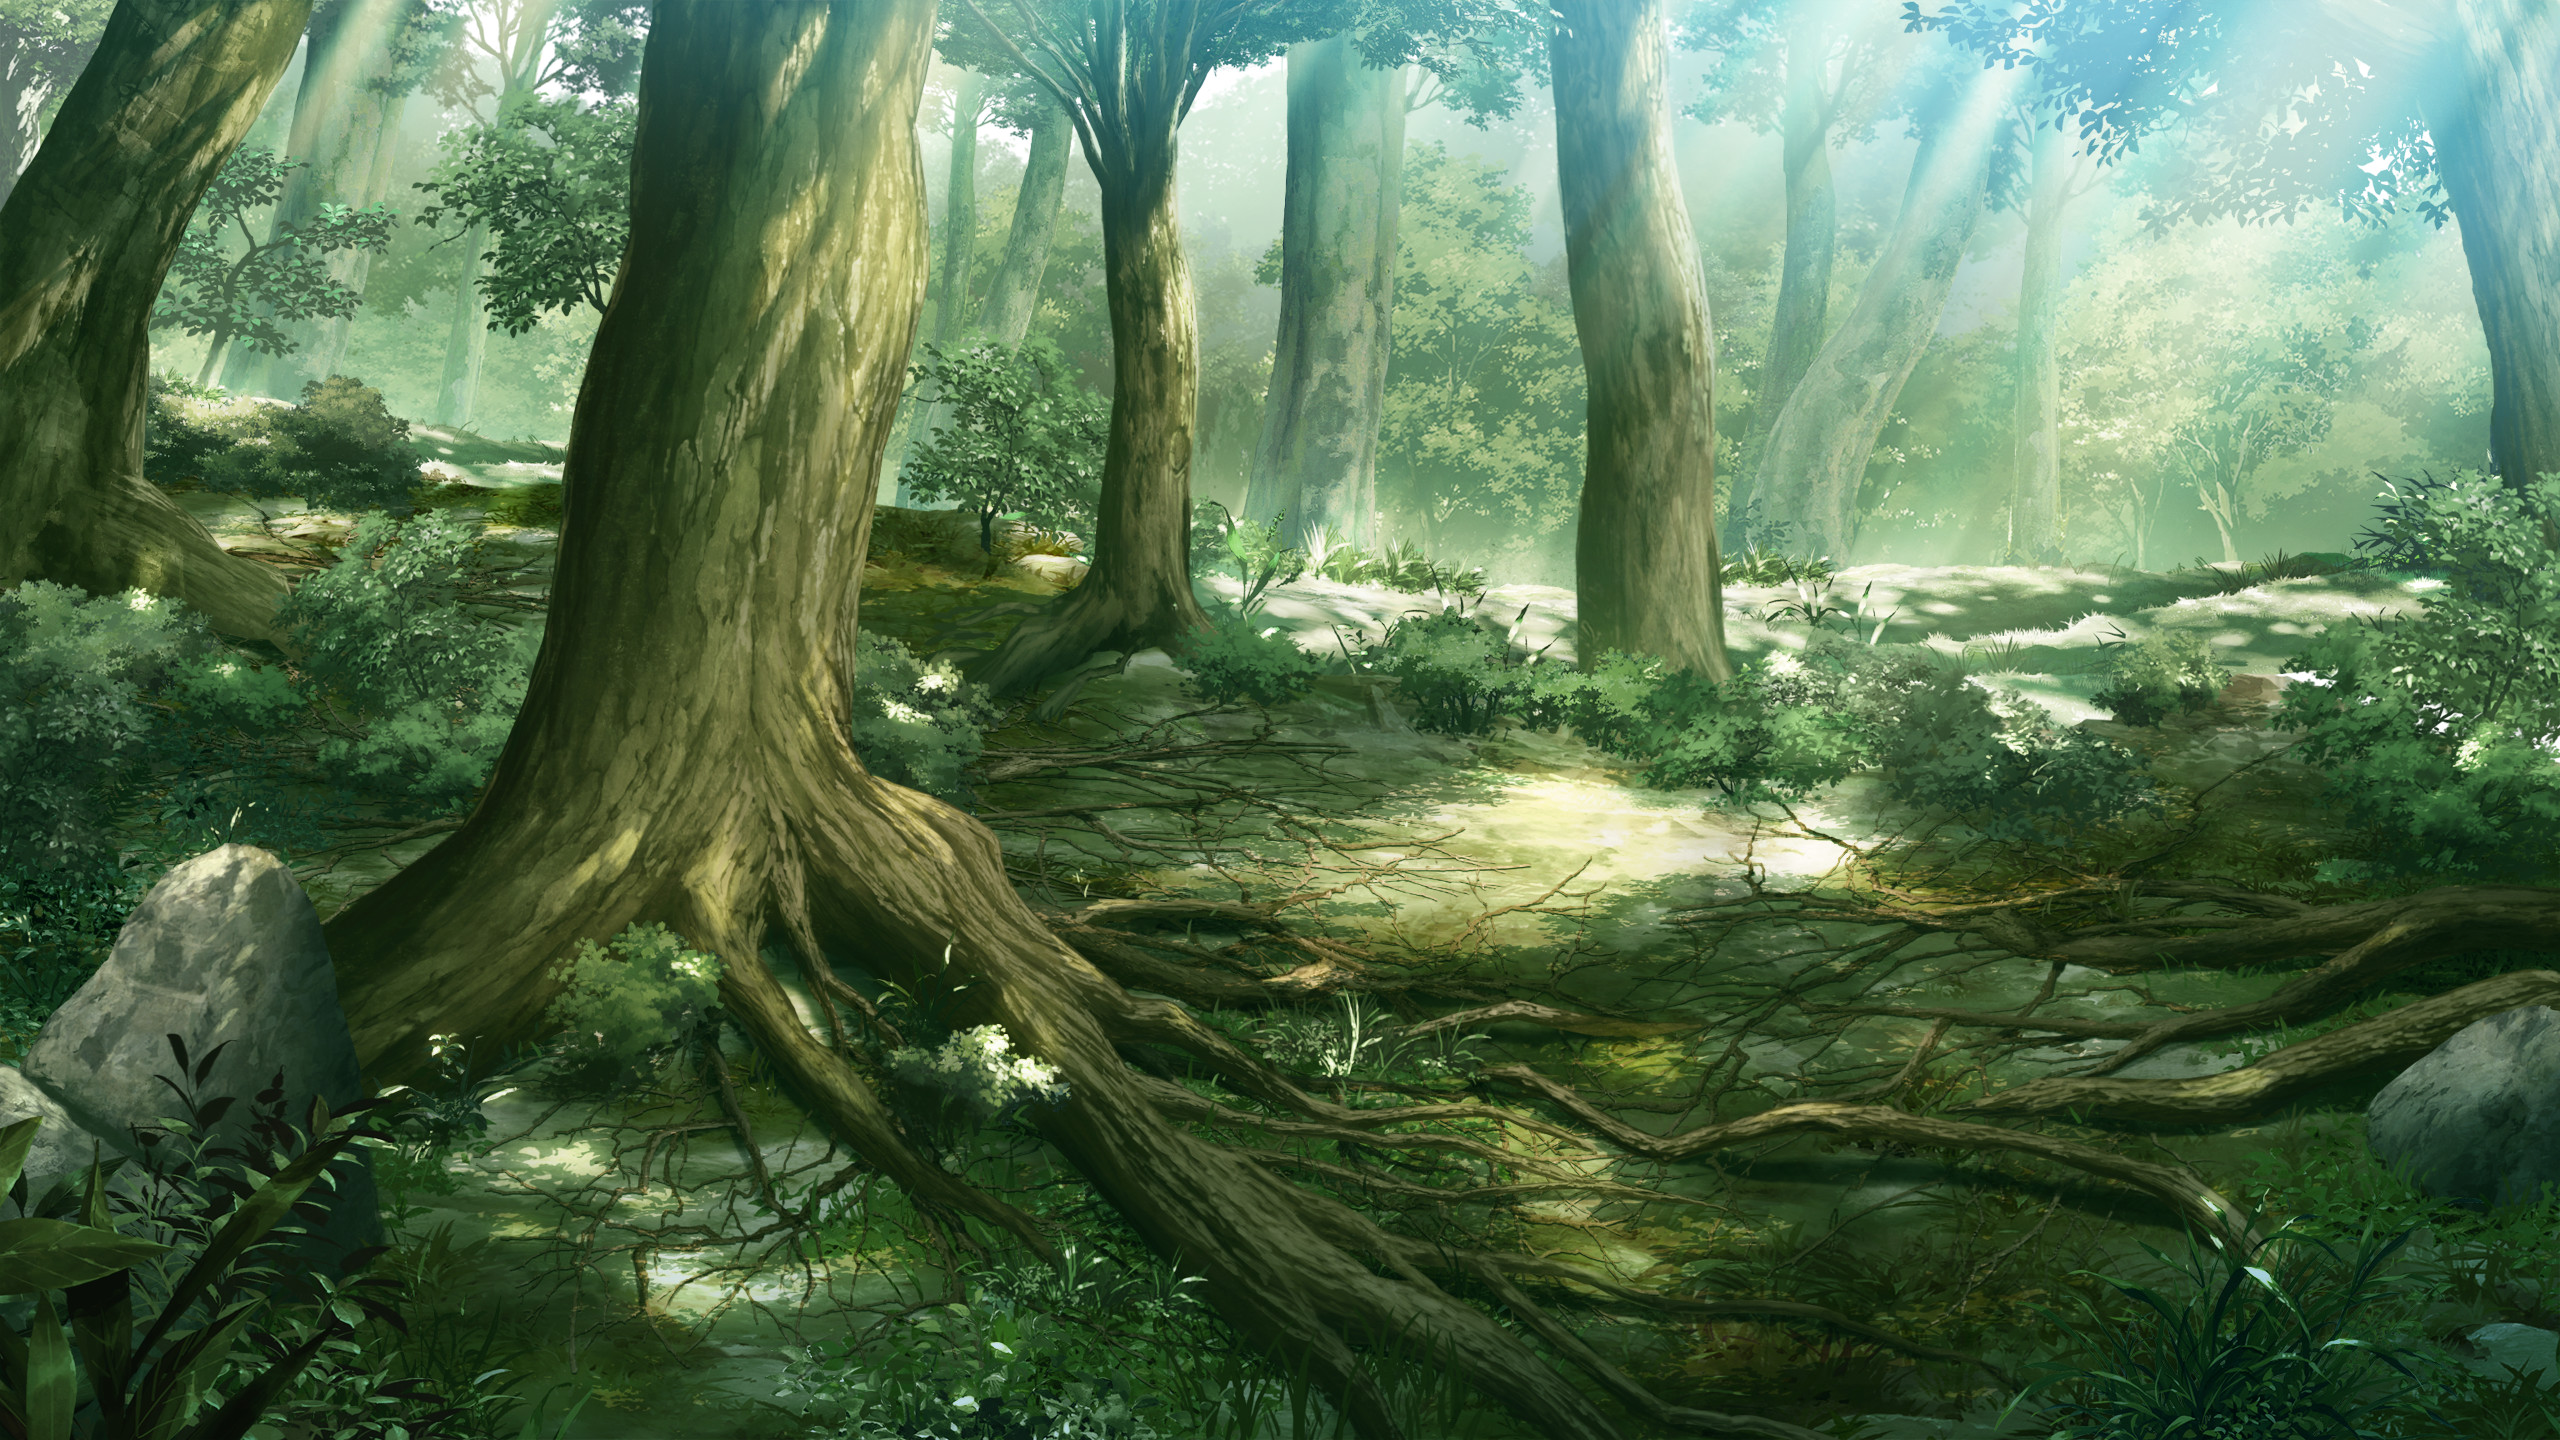 Anime Forest Scenery Wallpaper 7990